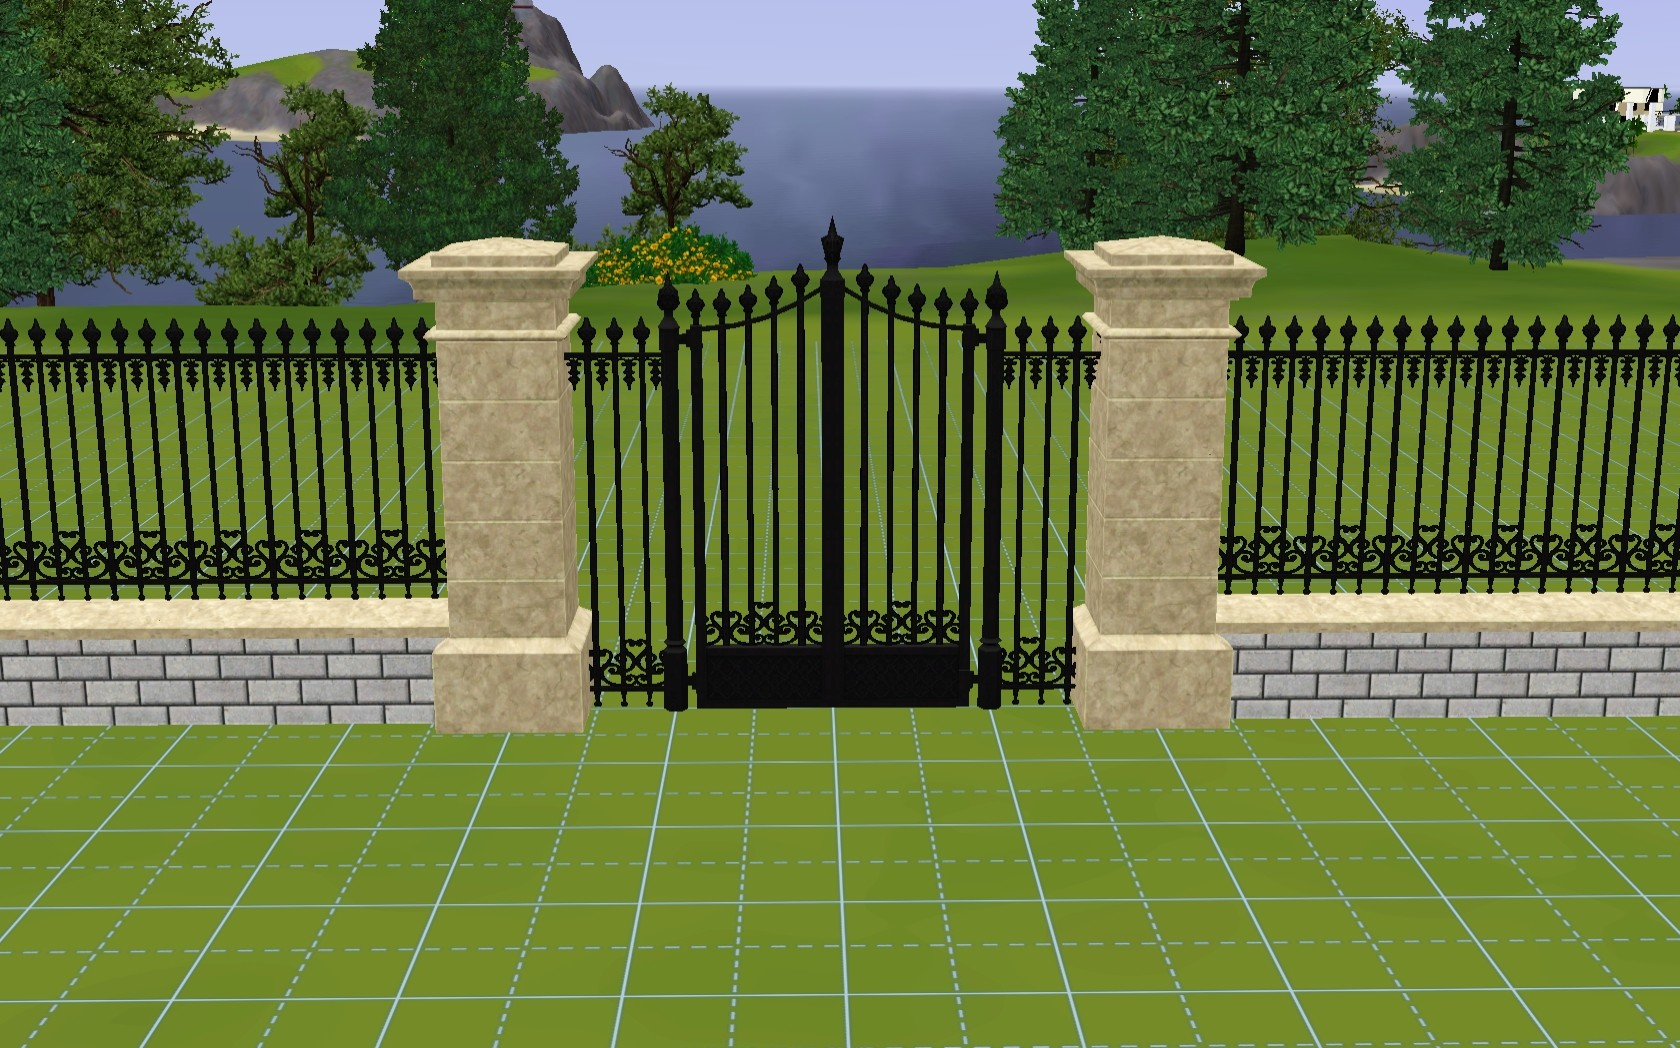 Mod The Sims Wrought Iron Gate And Fences